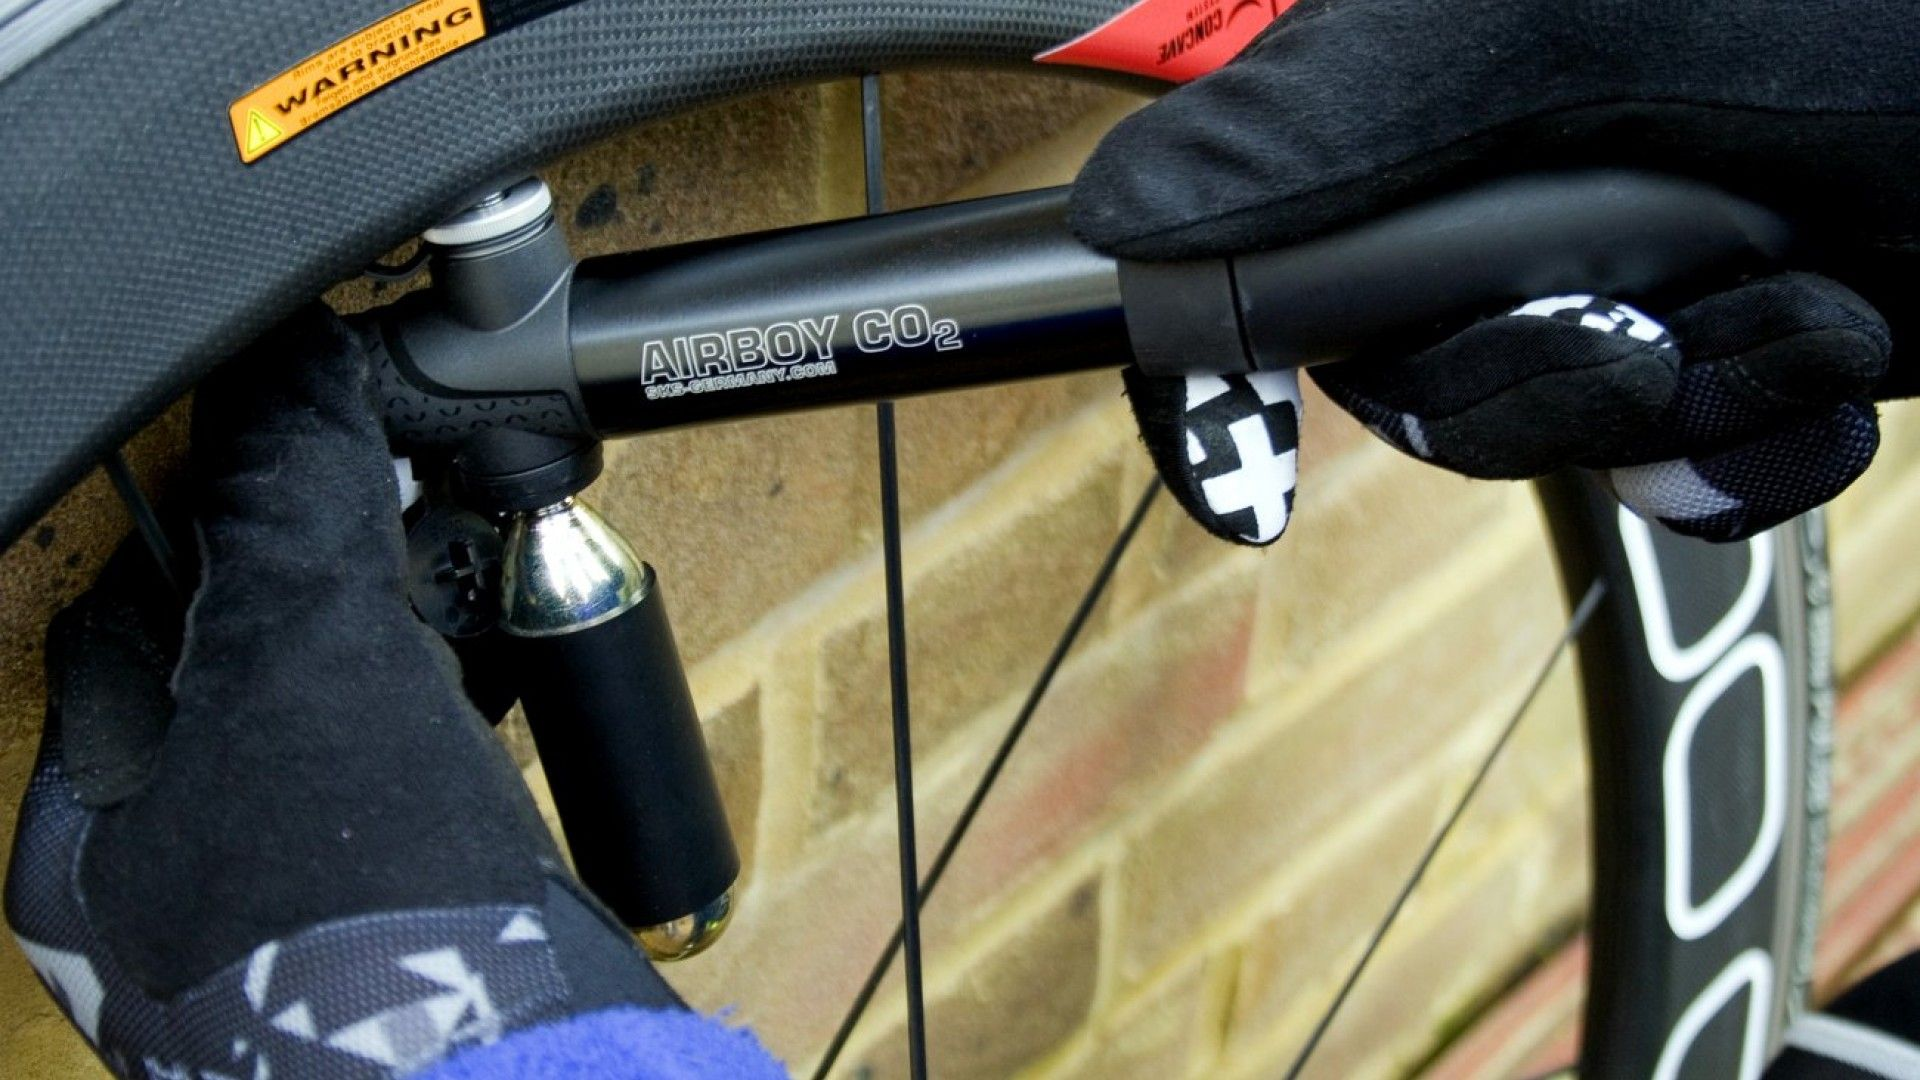 Keep Your Tires Full And Your Ride Smooth With Co2 Bike Pumps